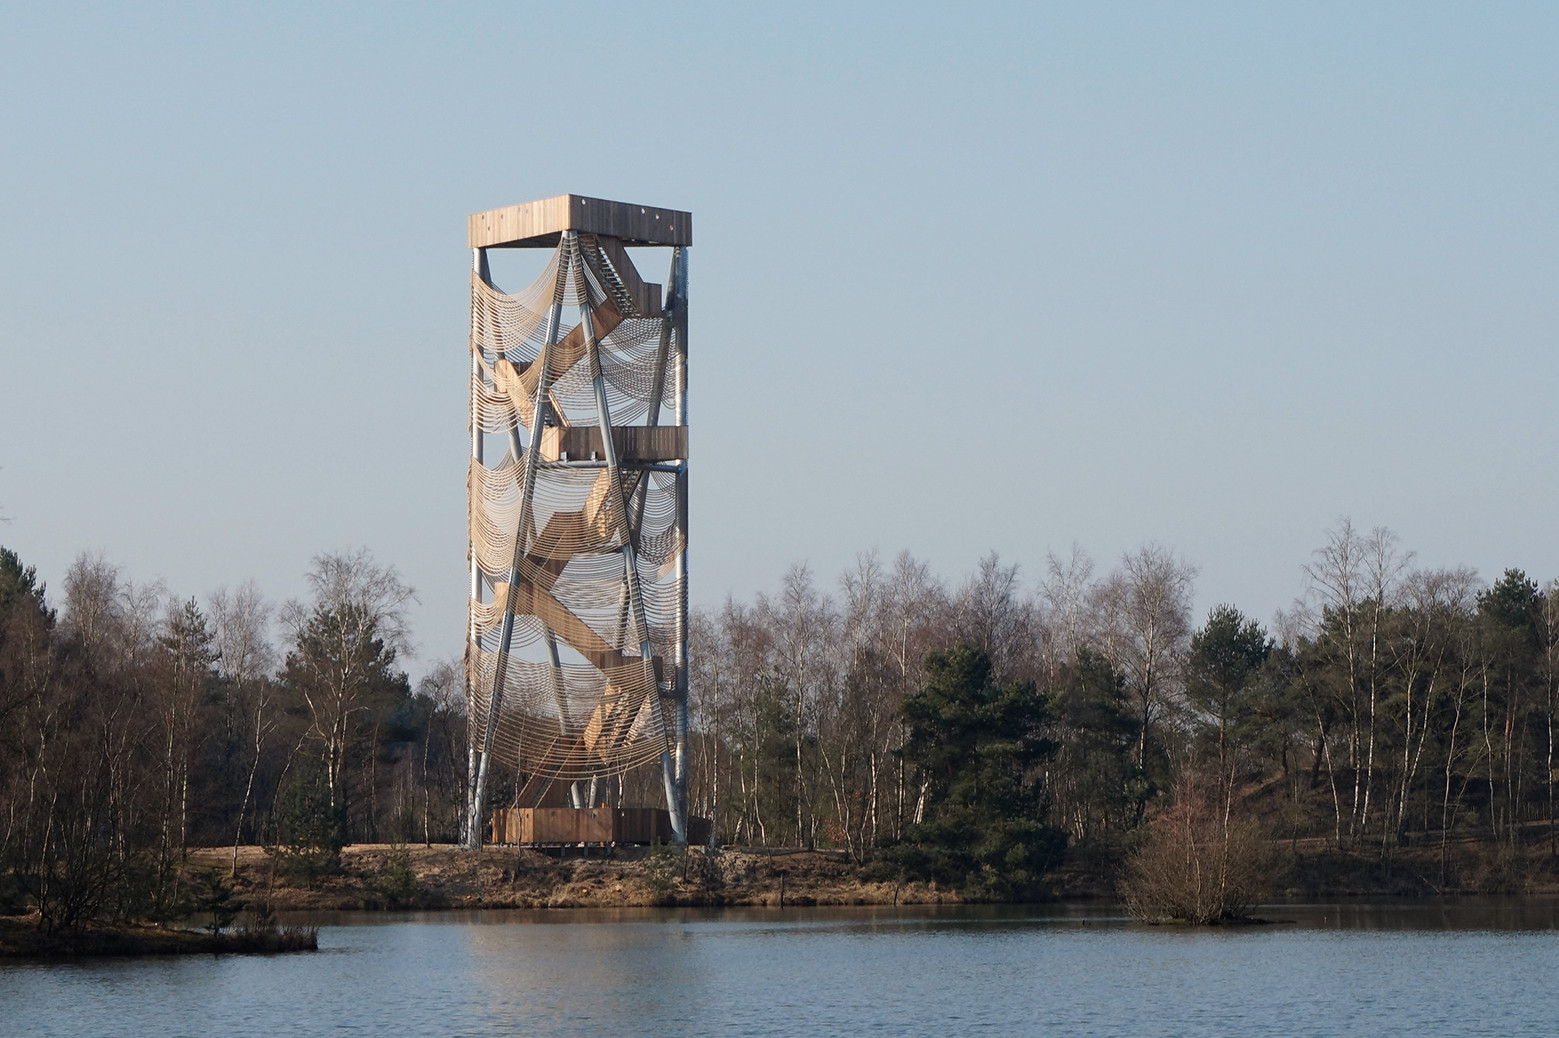 Viewing Tower Lommel / Ateliereen Architecten, Courtesy of Ateliereen Architecten